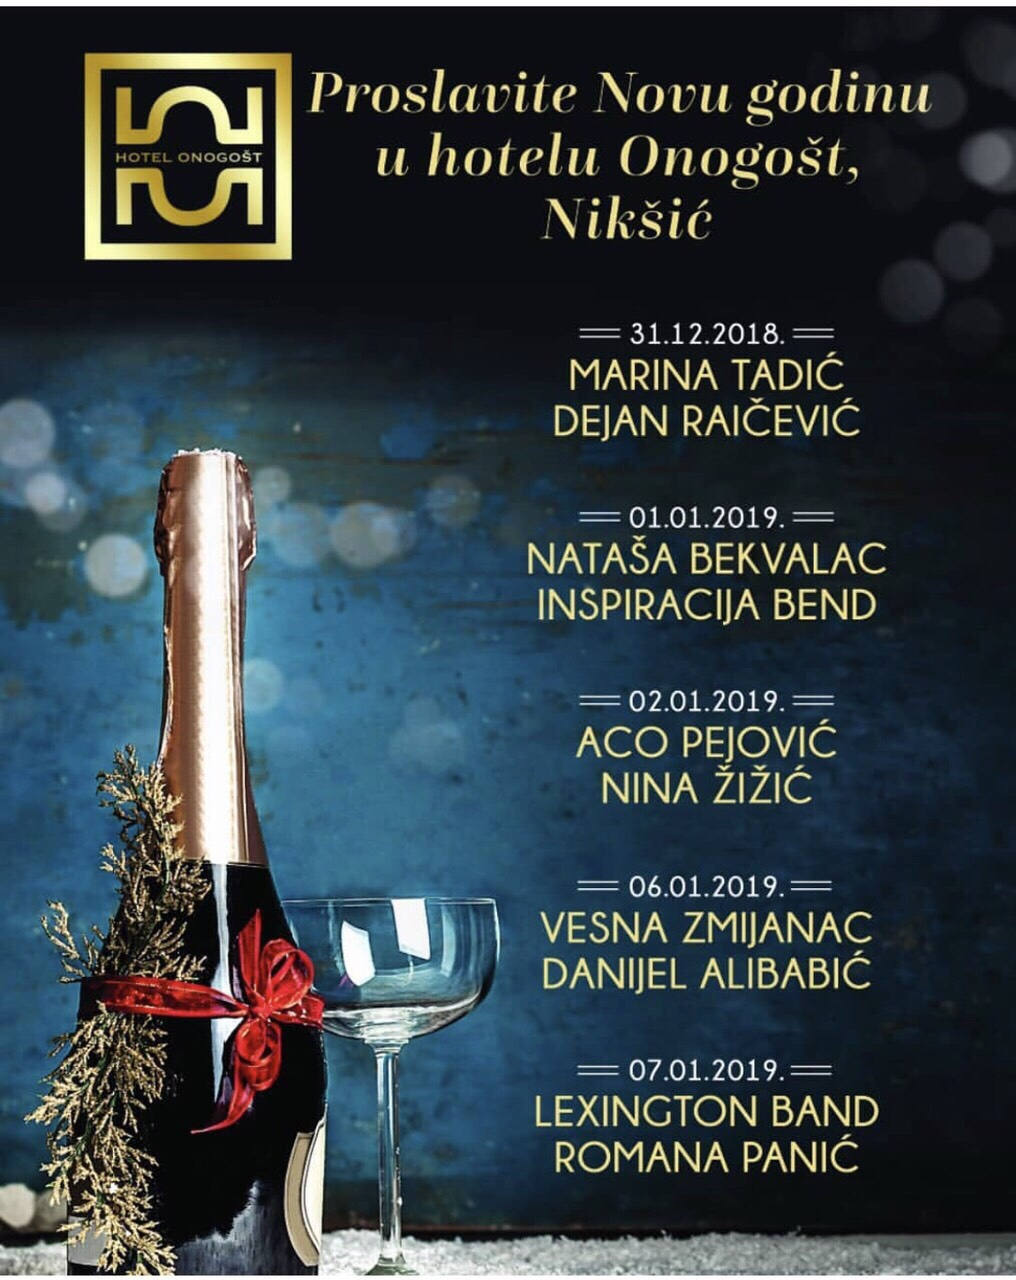 New Year 2019 at Hotel Onogost